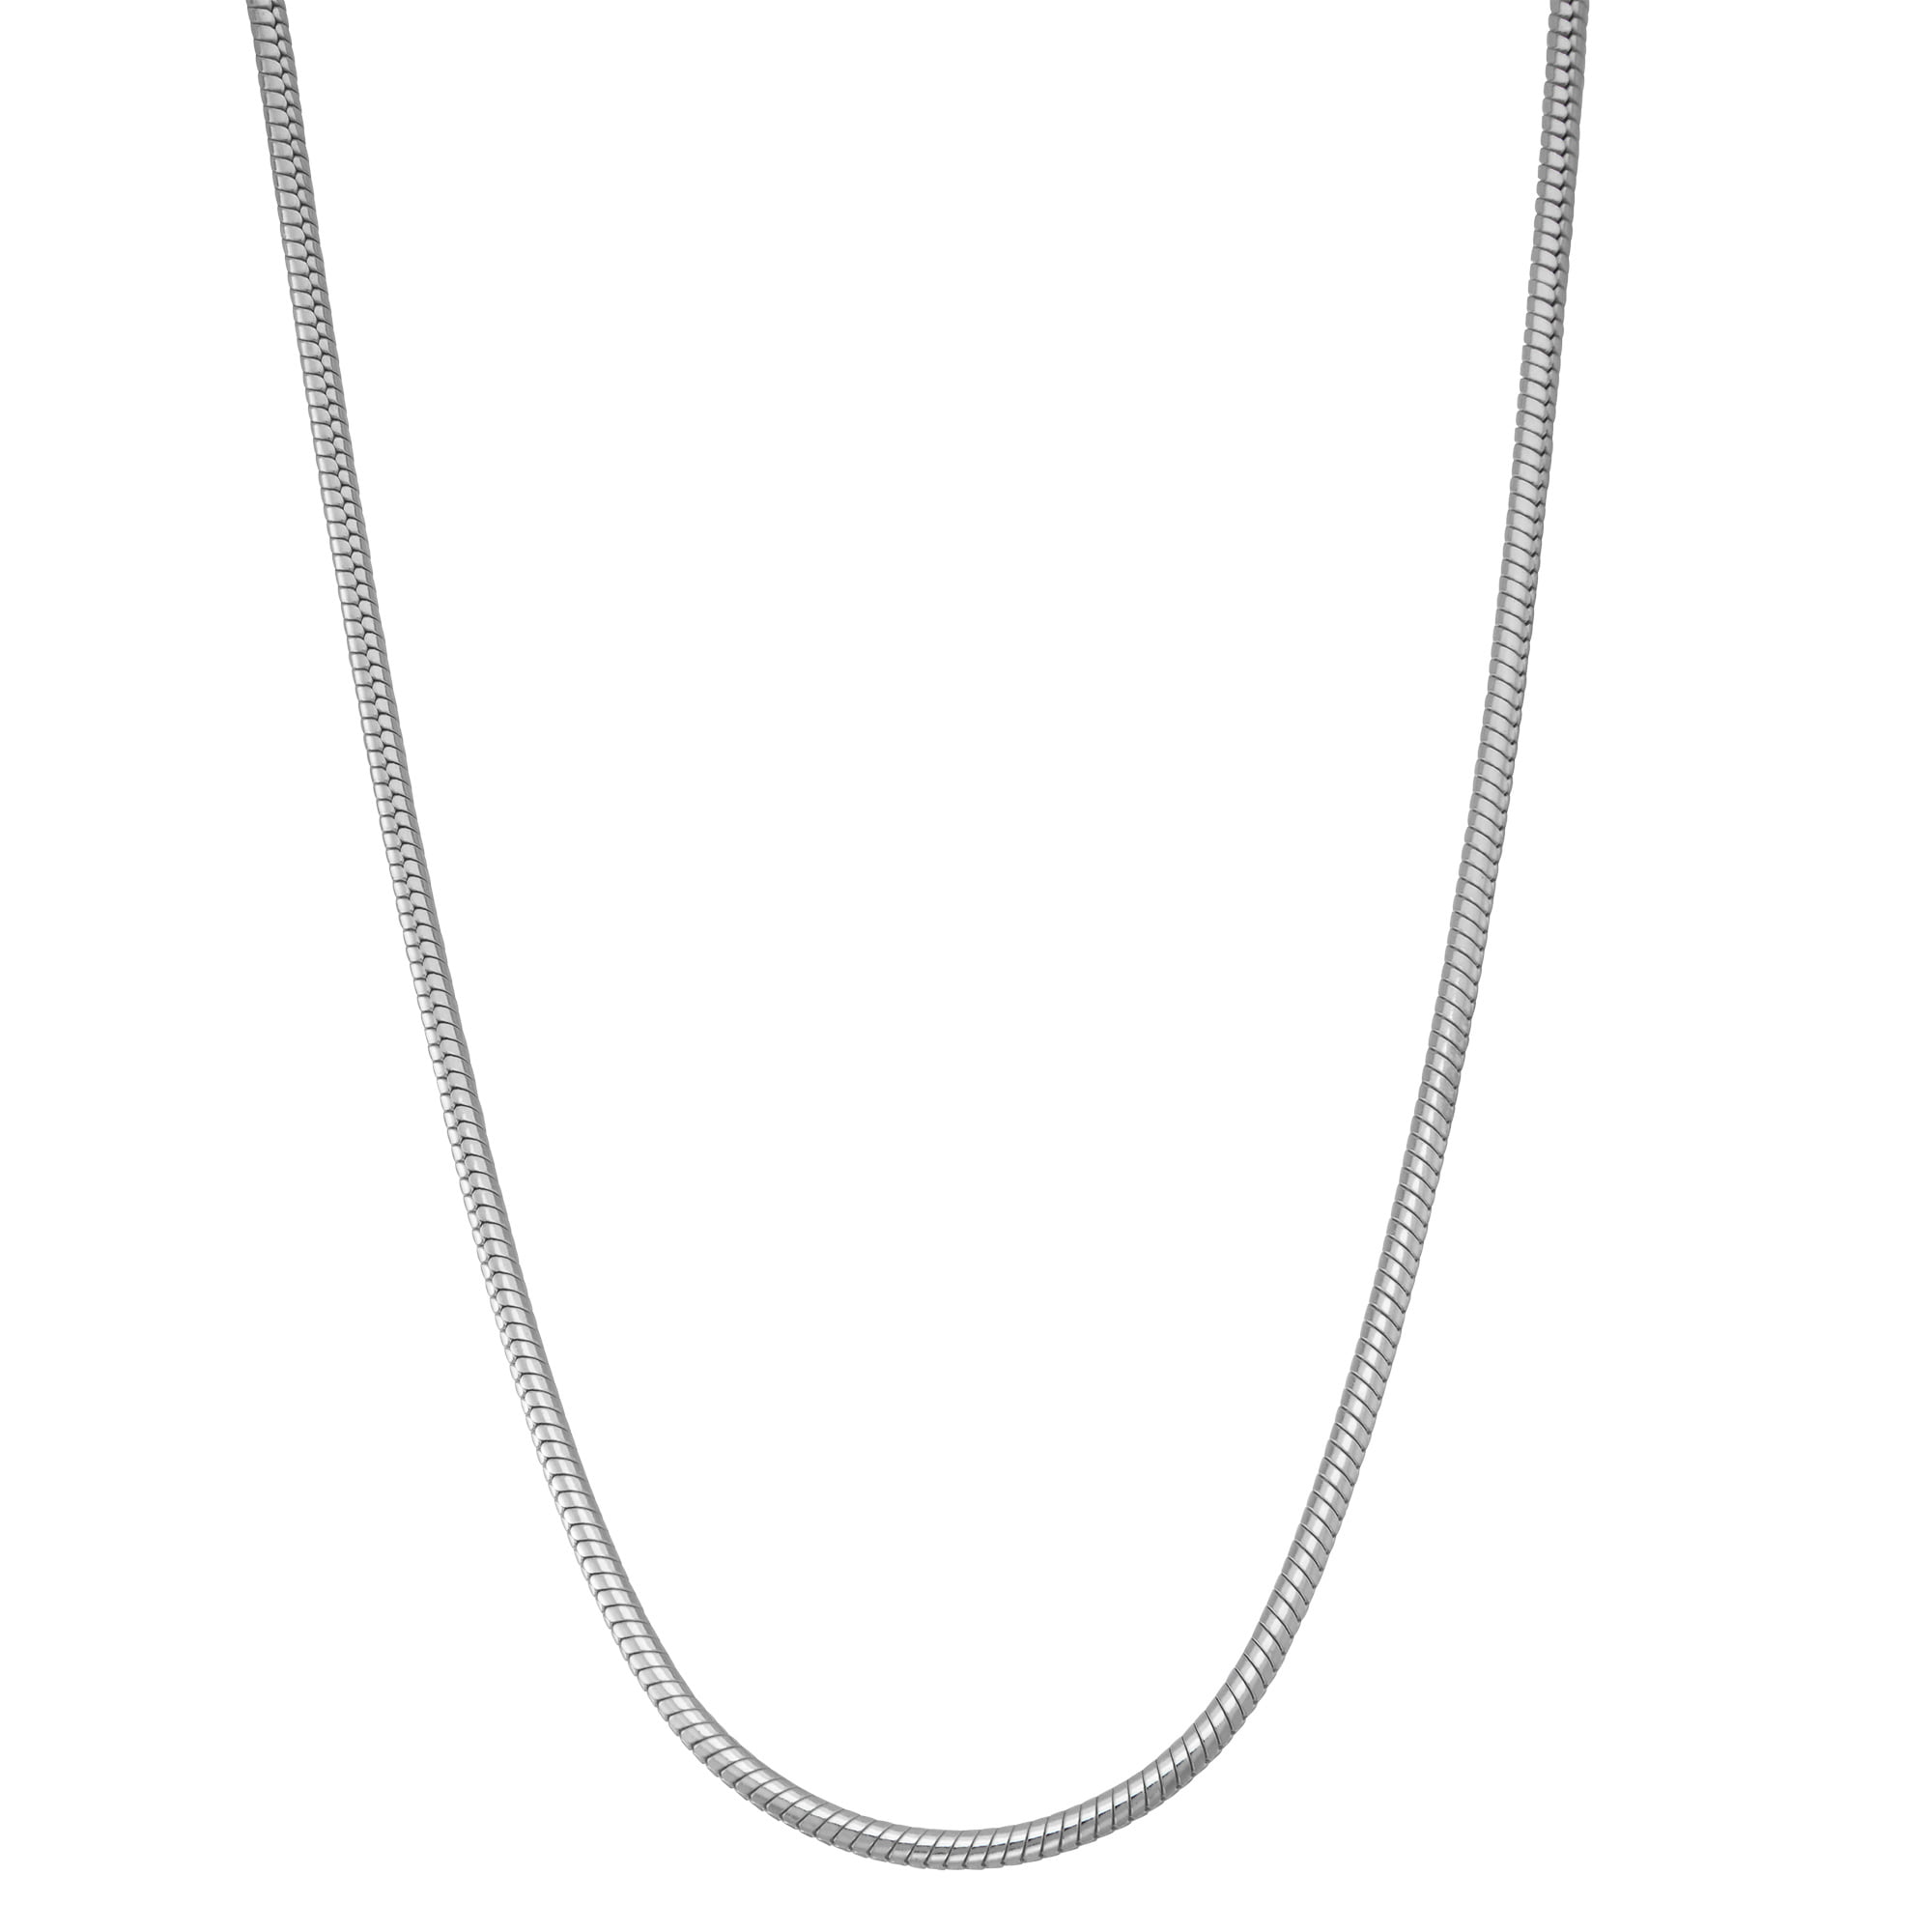 FREE SHIPPING-Sterlin Silver Neckalce,Rolo Style Chain Necklace For Men,Men/'s Sterling Silver Necklace,Men/'s Jewelry,Silver Necklace For Men